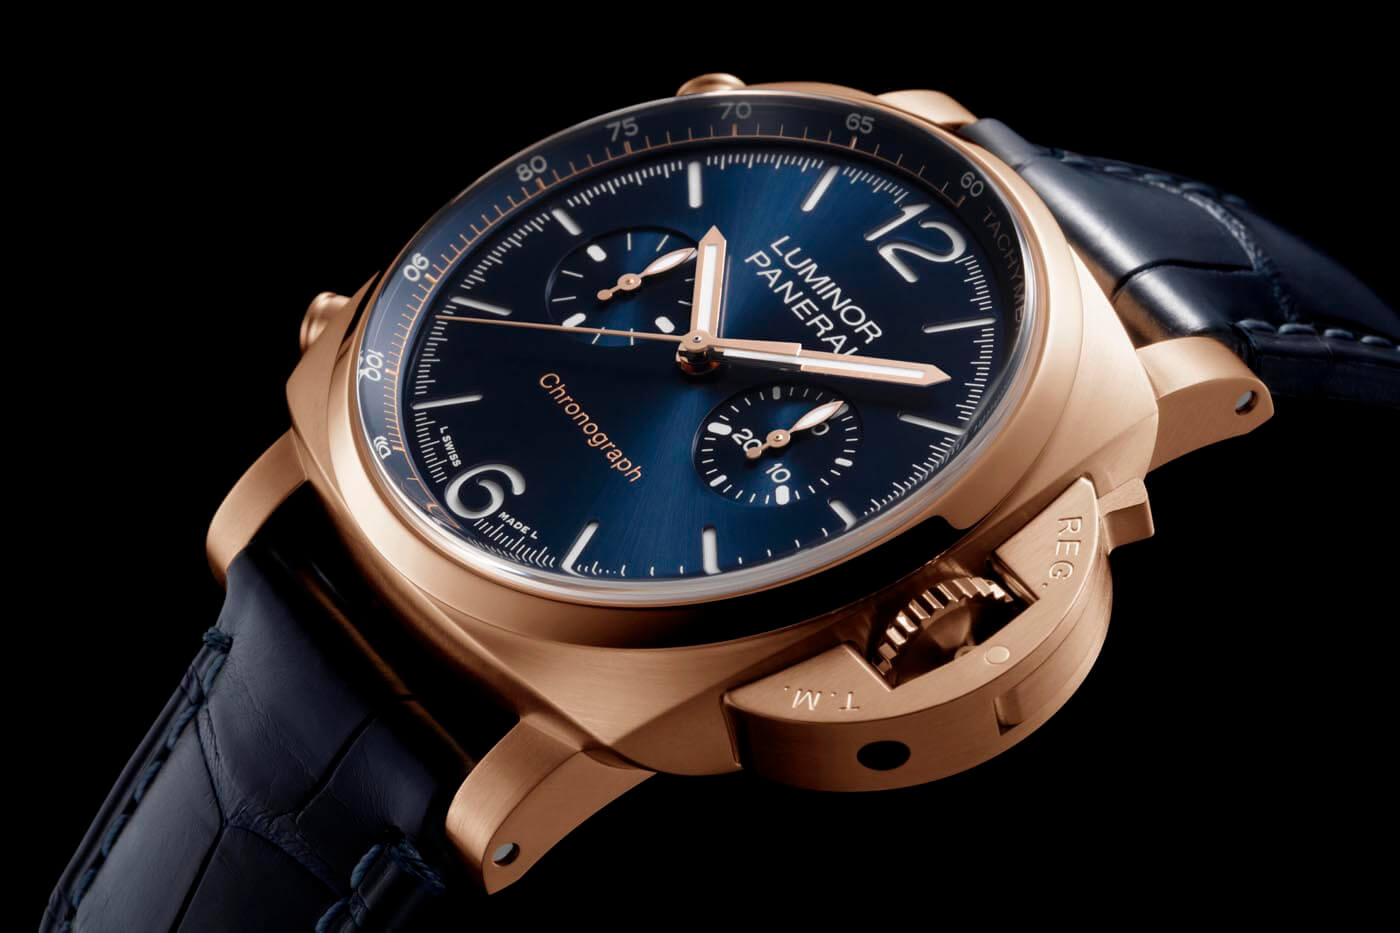 Panerai Luminor Chrono Goldtech Blu Notte 1